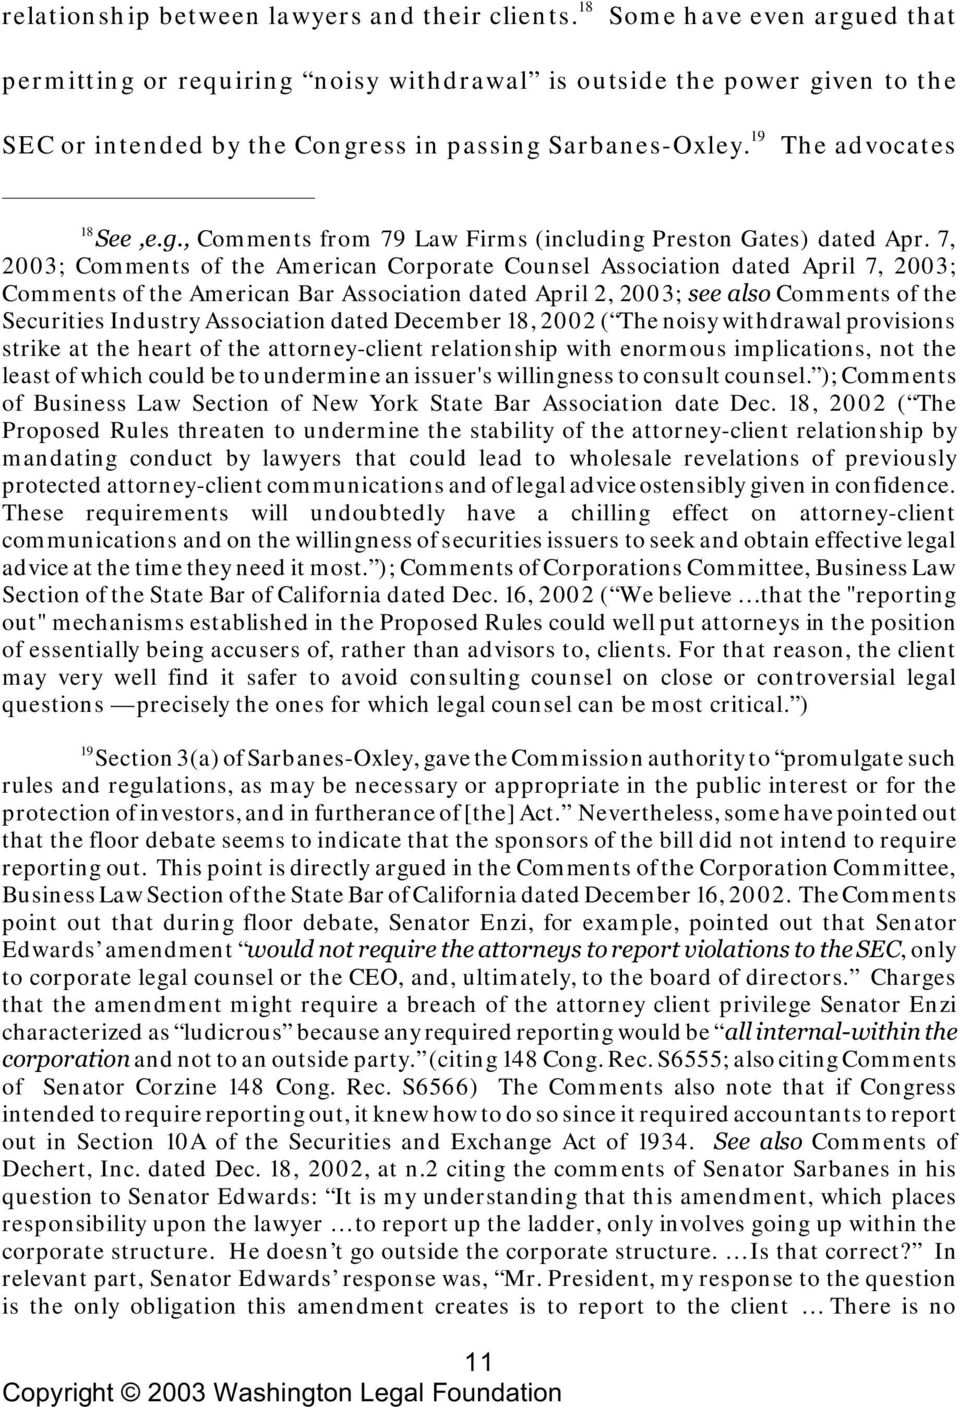 7, 2003; Comments of the American Corporate Counsel Association dated April 7, 2003; Comments of the American Bar Association dated April 2, 2003; see also Comments of the Securities Industry